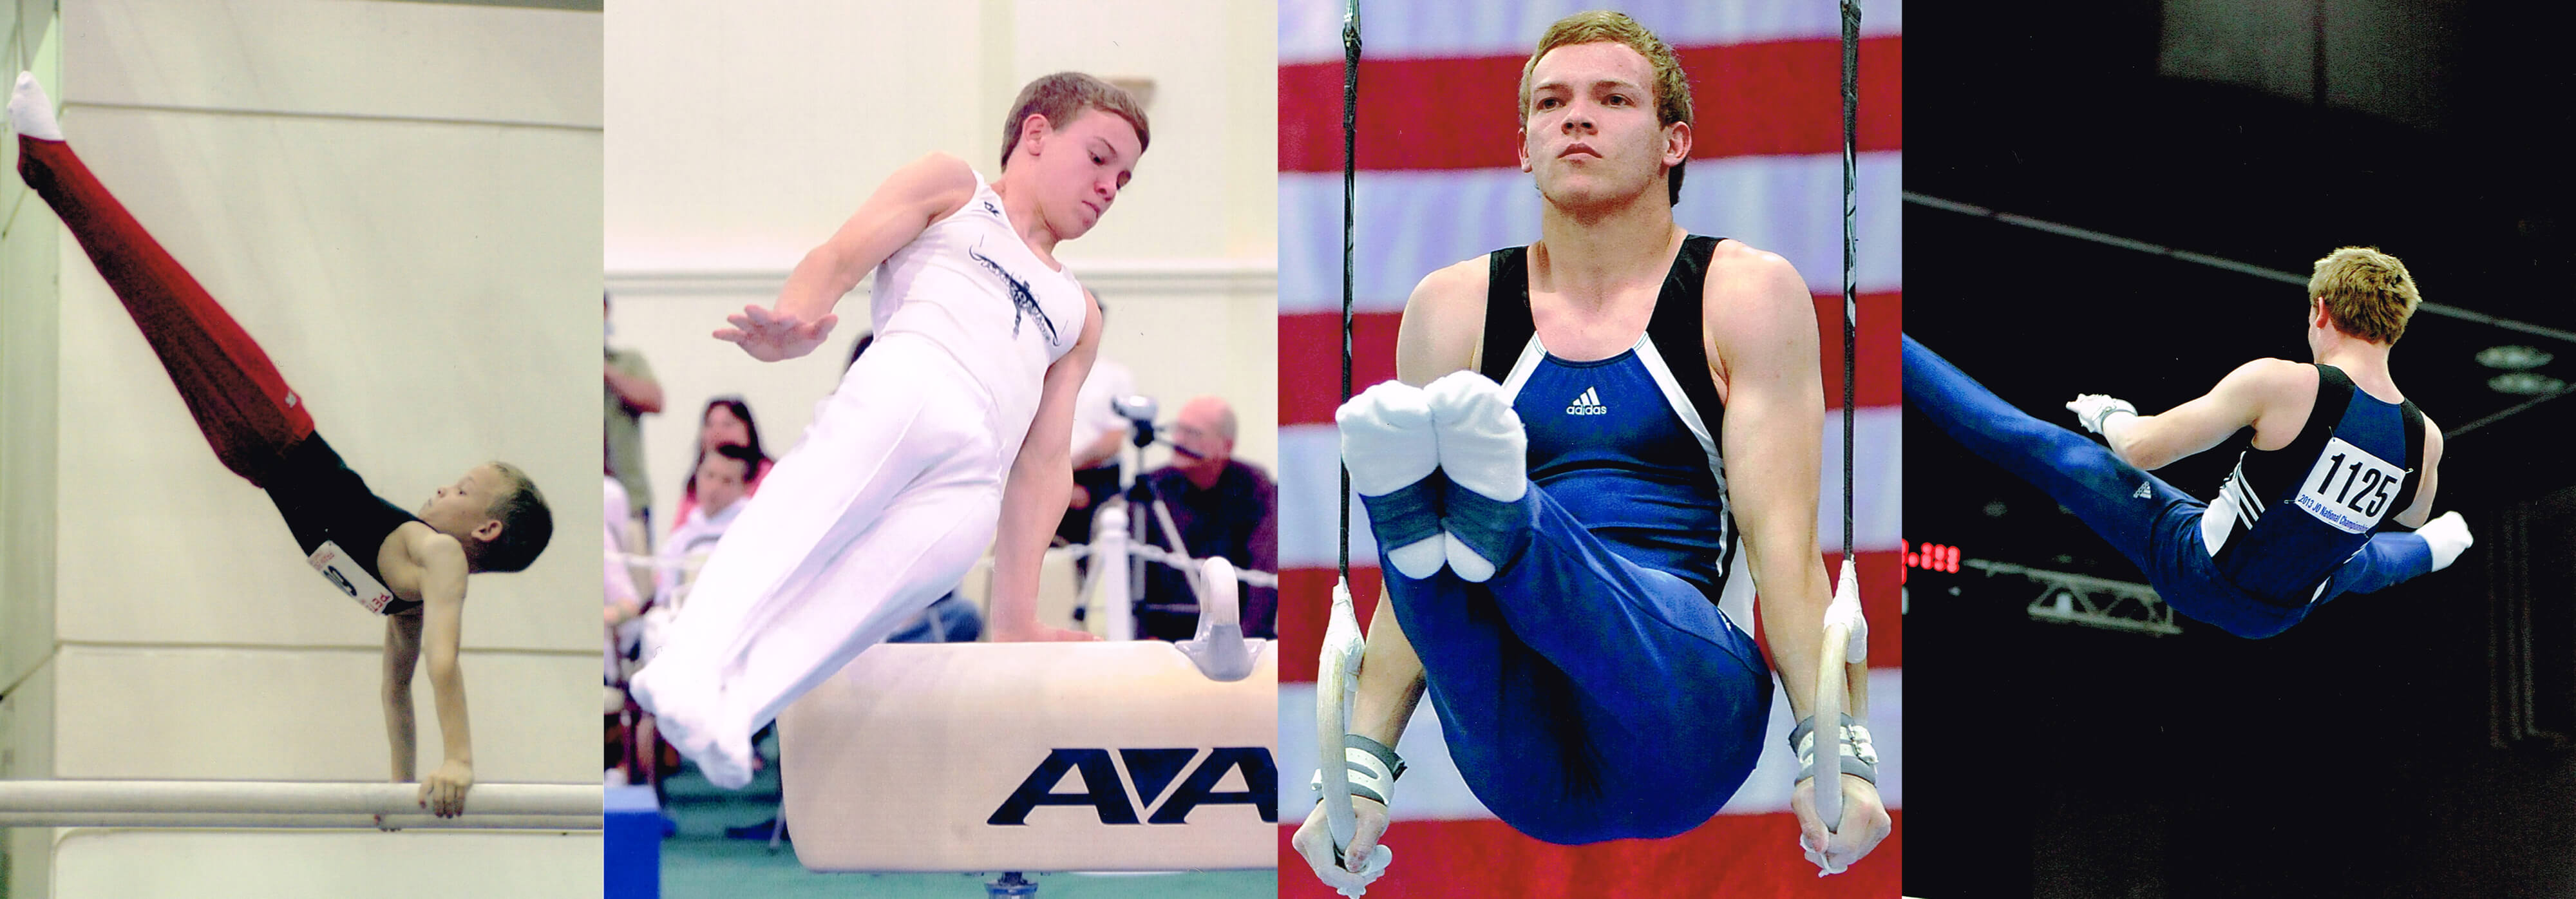 GymnasticBodies athlete's progression through his gymnastic training career.